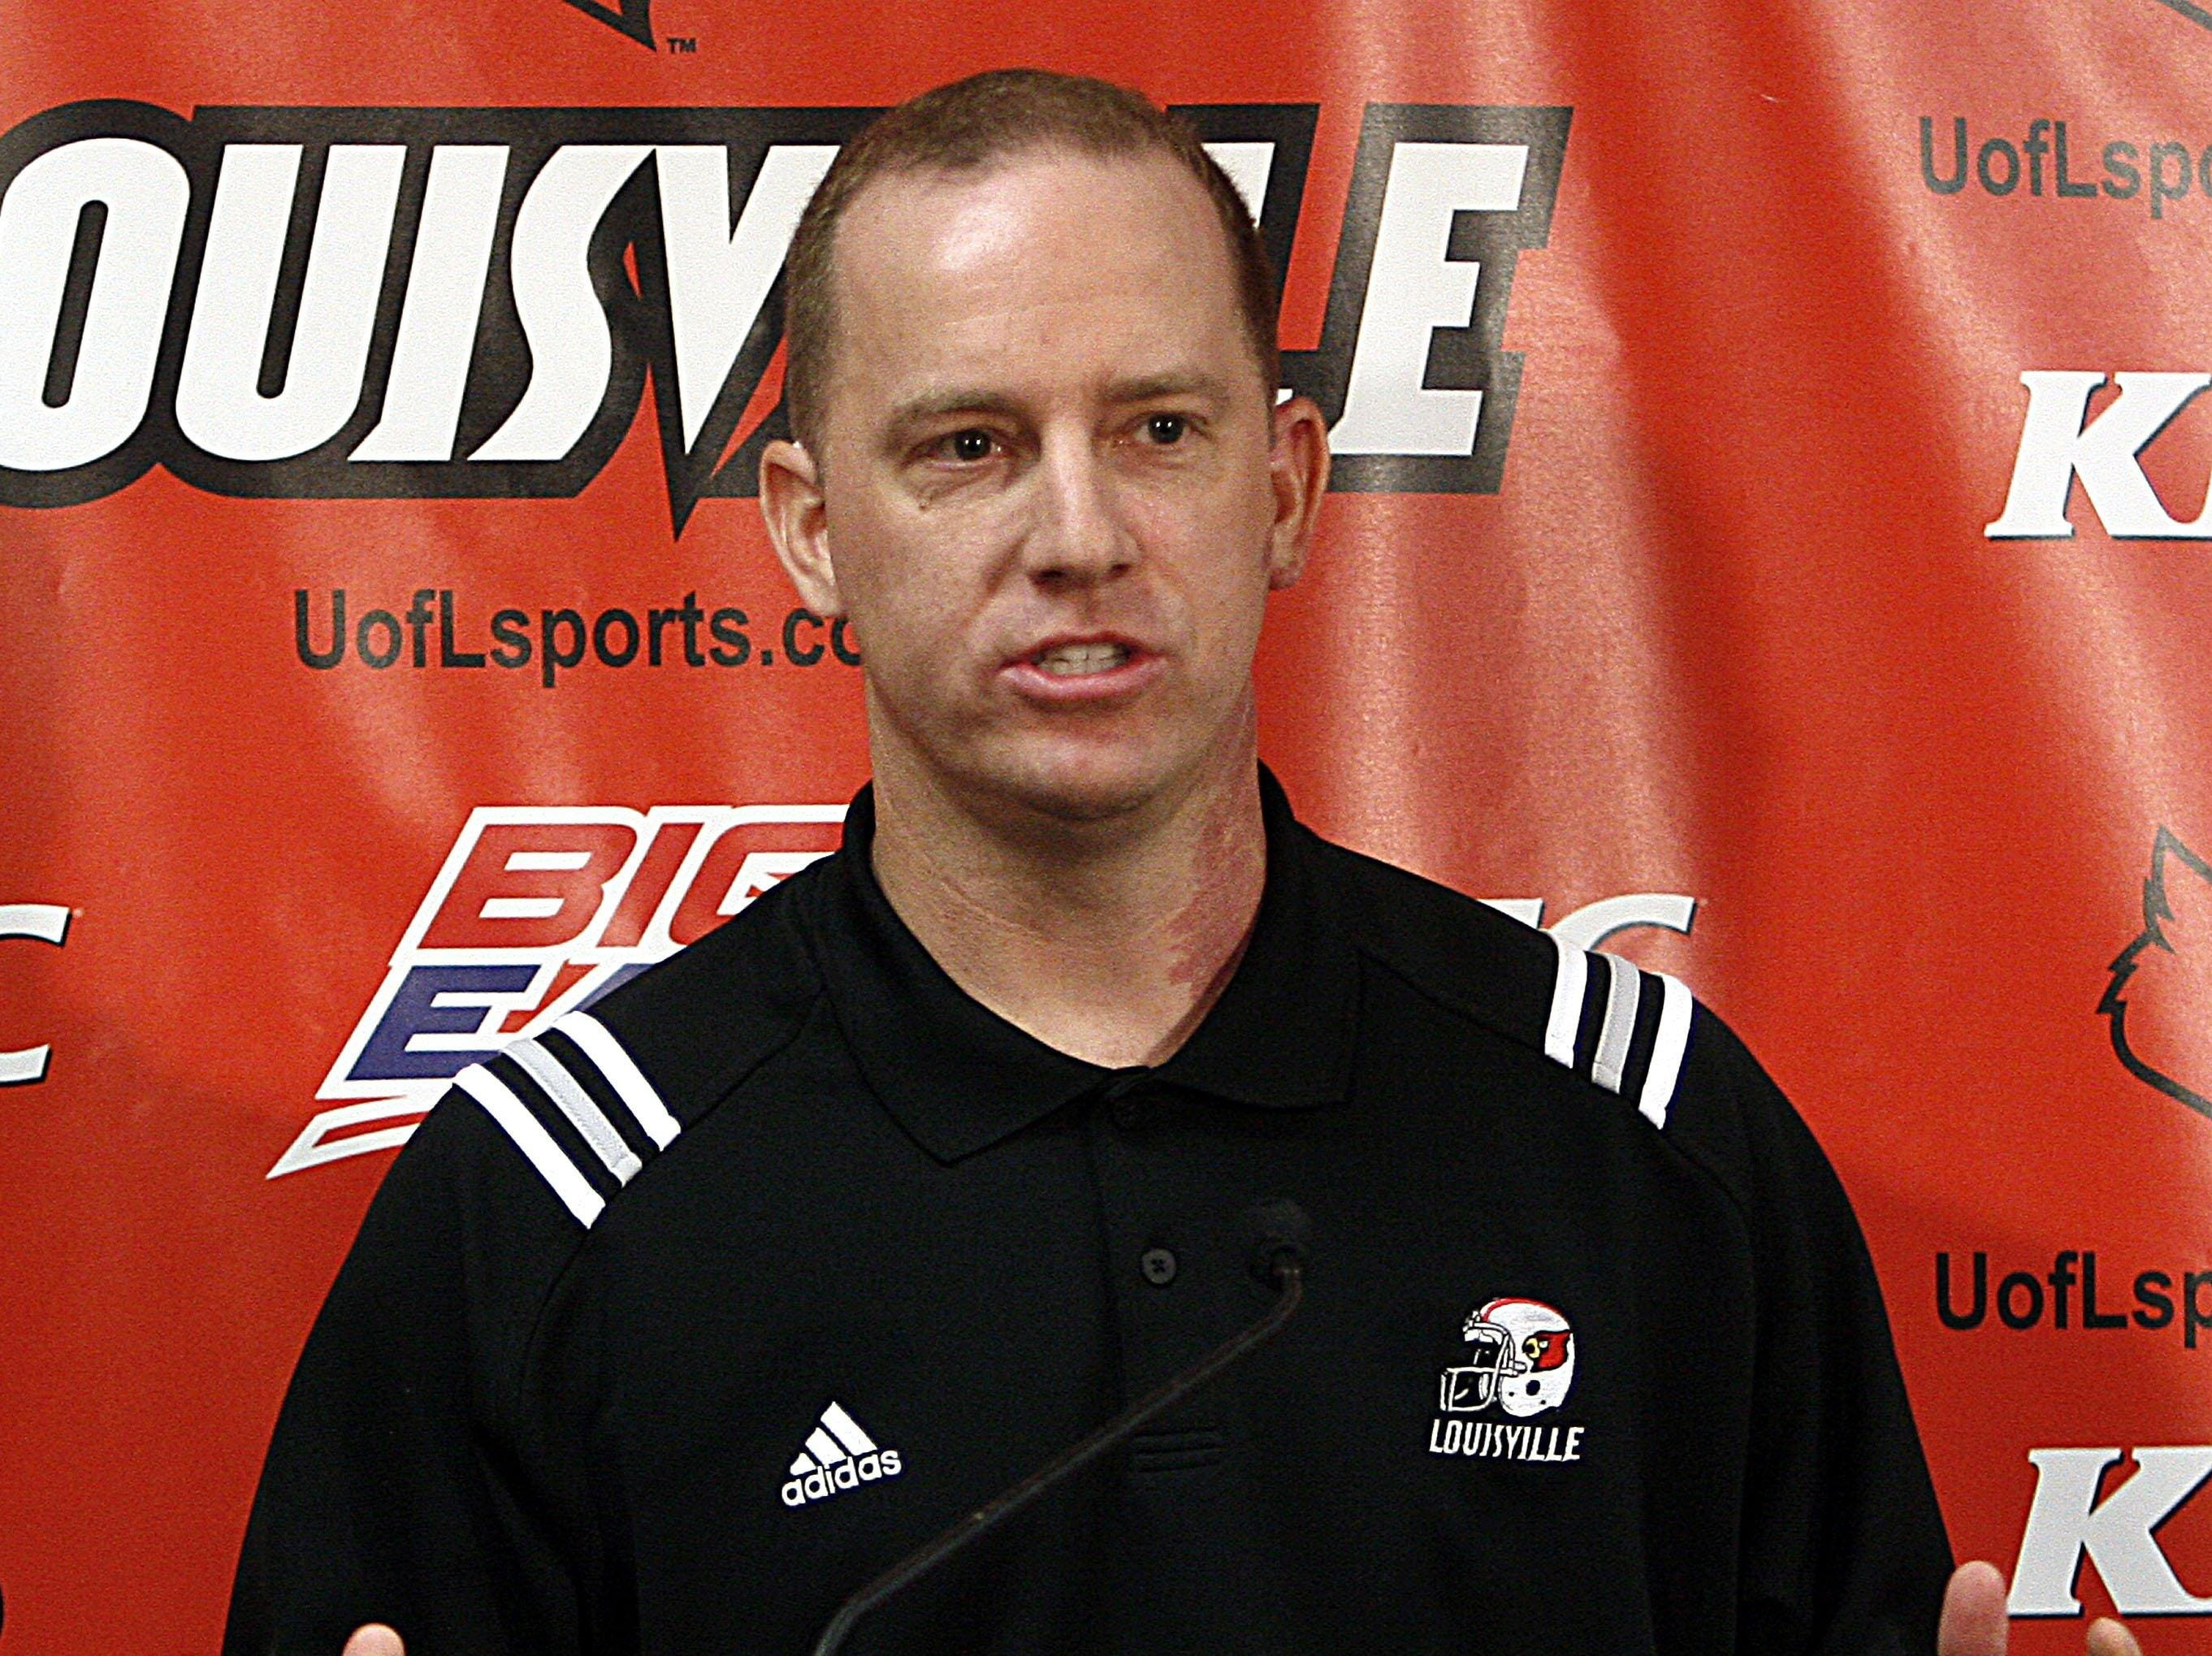 Jeff Brohm talks about his new position on the Louisville football staff as assistant head coach to Steve Kragthorpe during a news conference at Freedom Hall in Louisville, Ky., Saturday, Jan. 13, 2007. Brohm, a former Louisville player and quarterbacks coach on Bobby Petrino staff, turned down the offensive coordinator's job at Alabama to stay at Louisville.